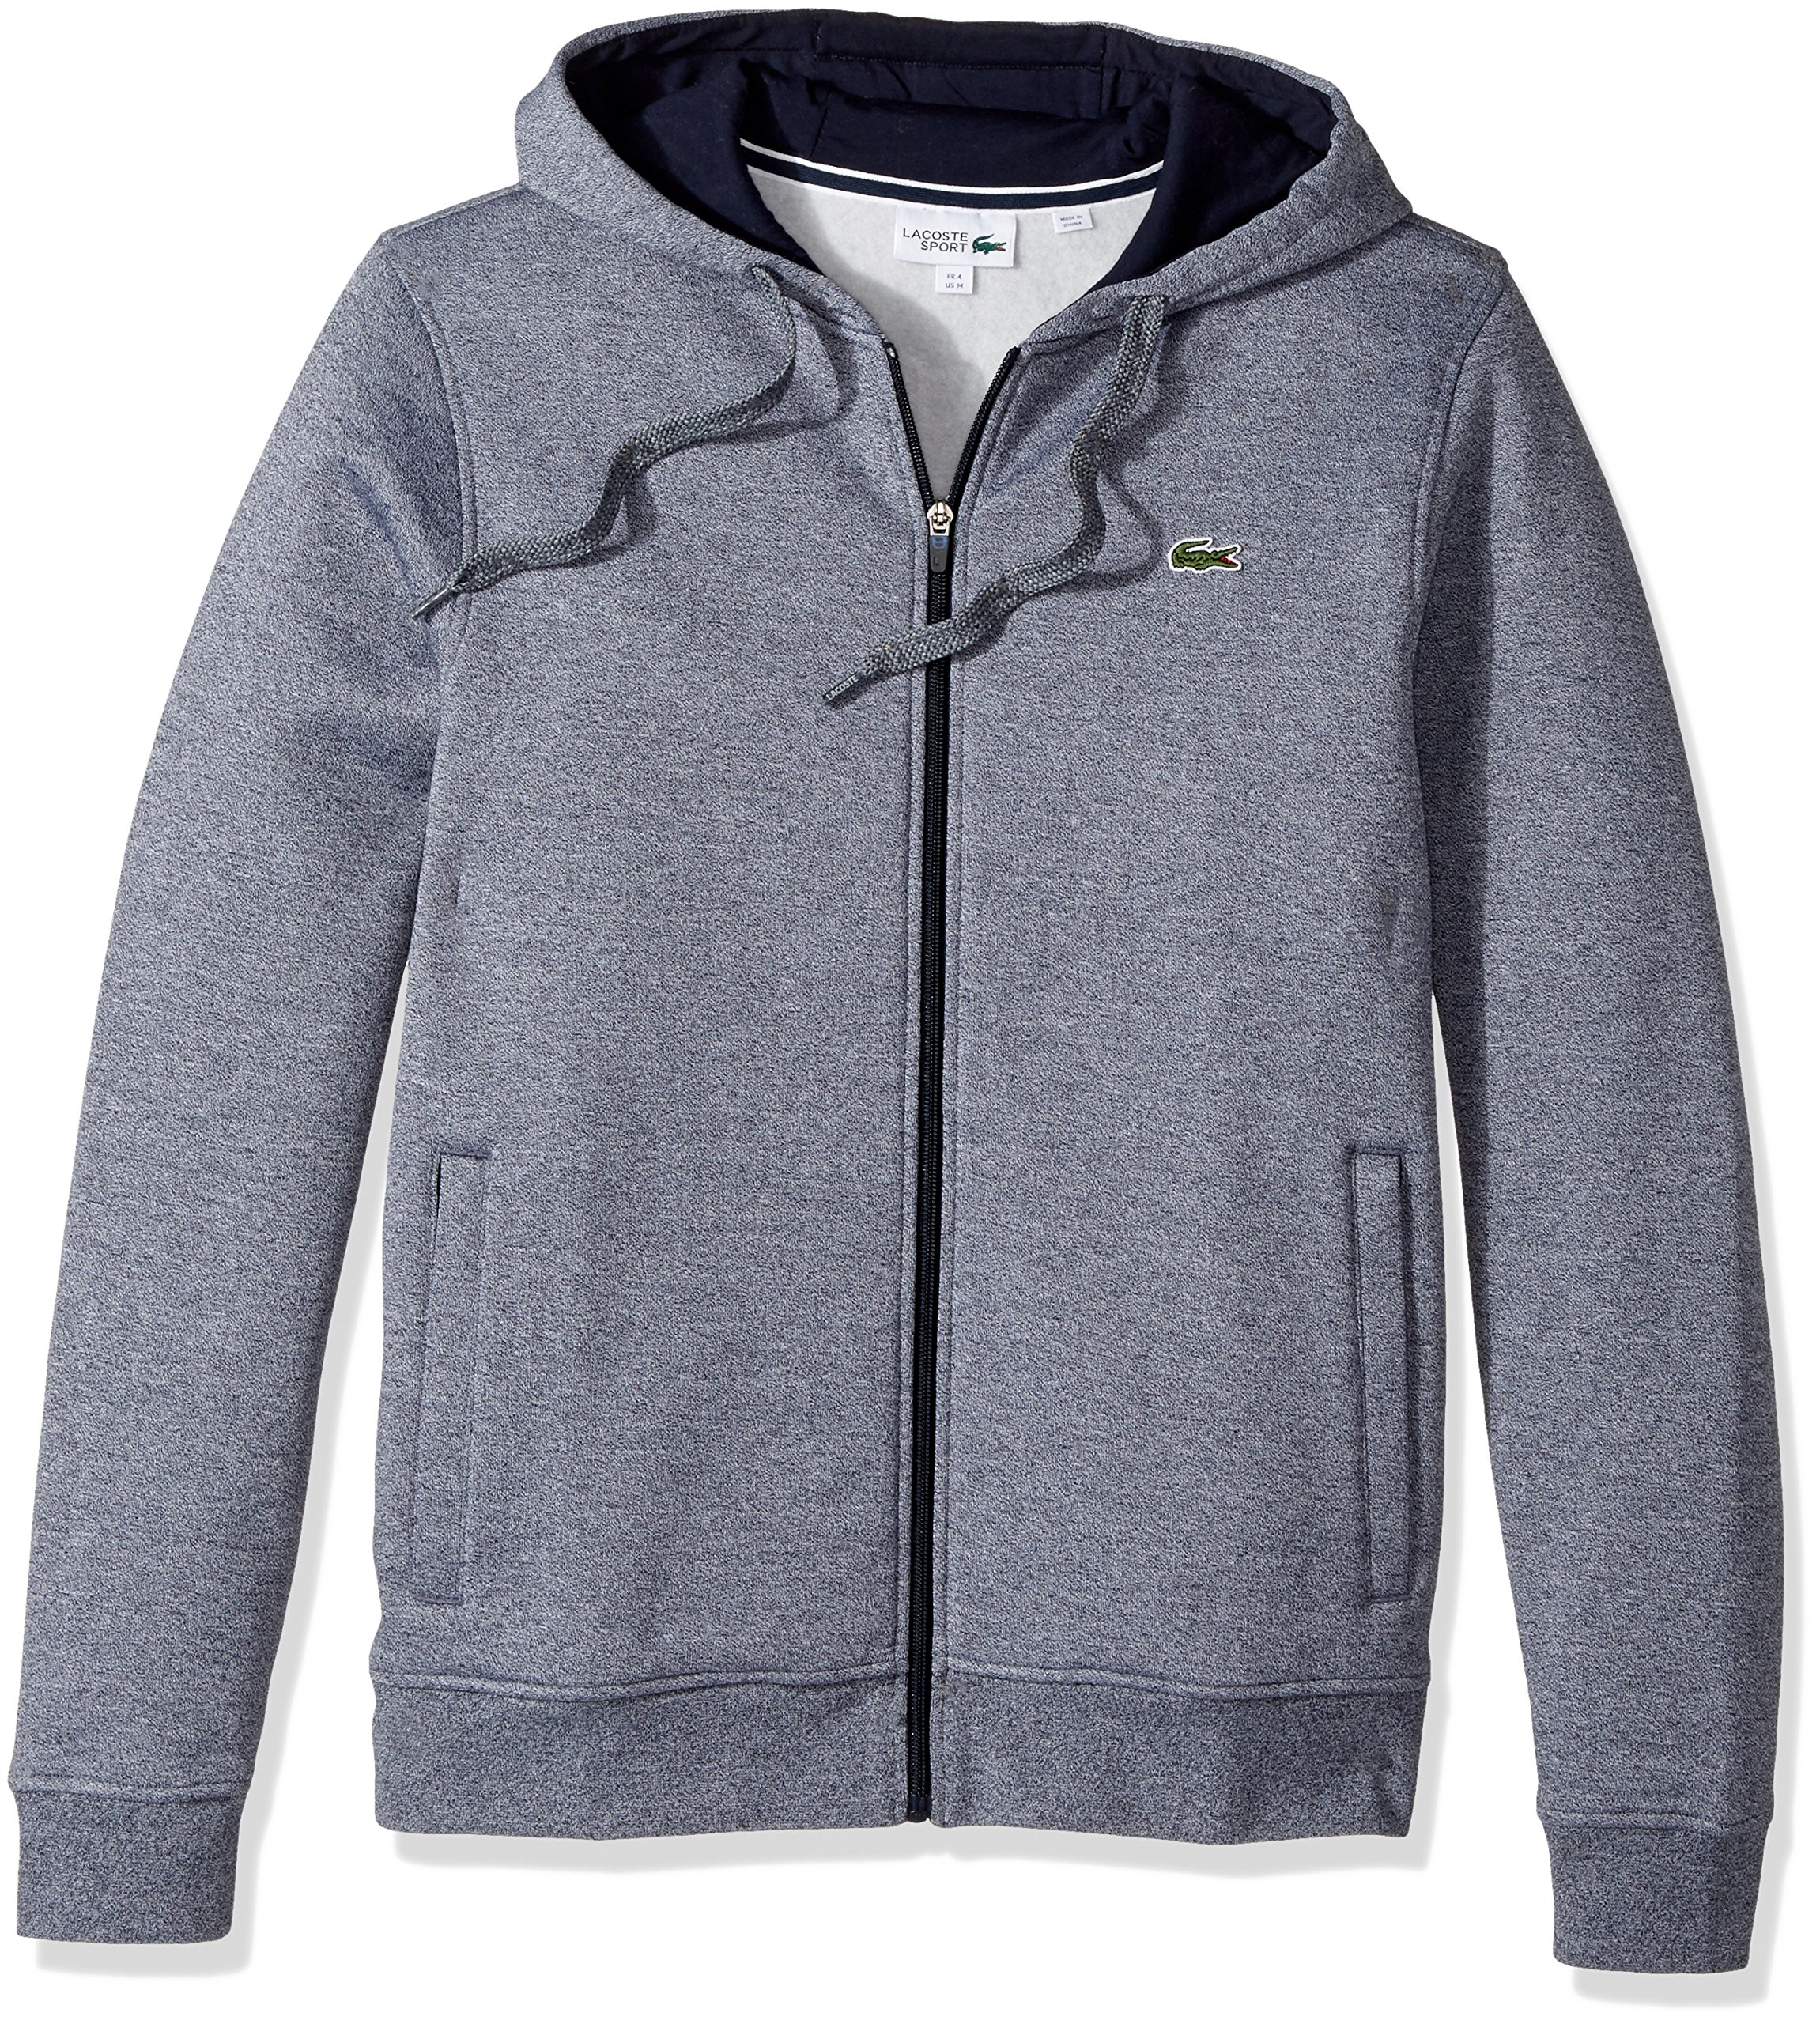 Lacoste Men's Full Zip Hoodie Fleece Sweatshirt, Moline Navy Blue, Small